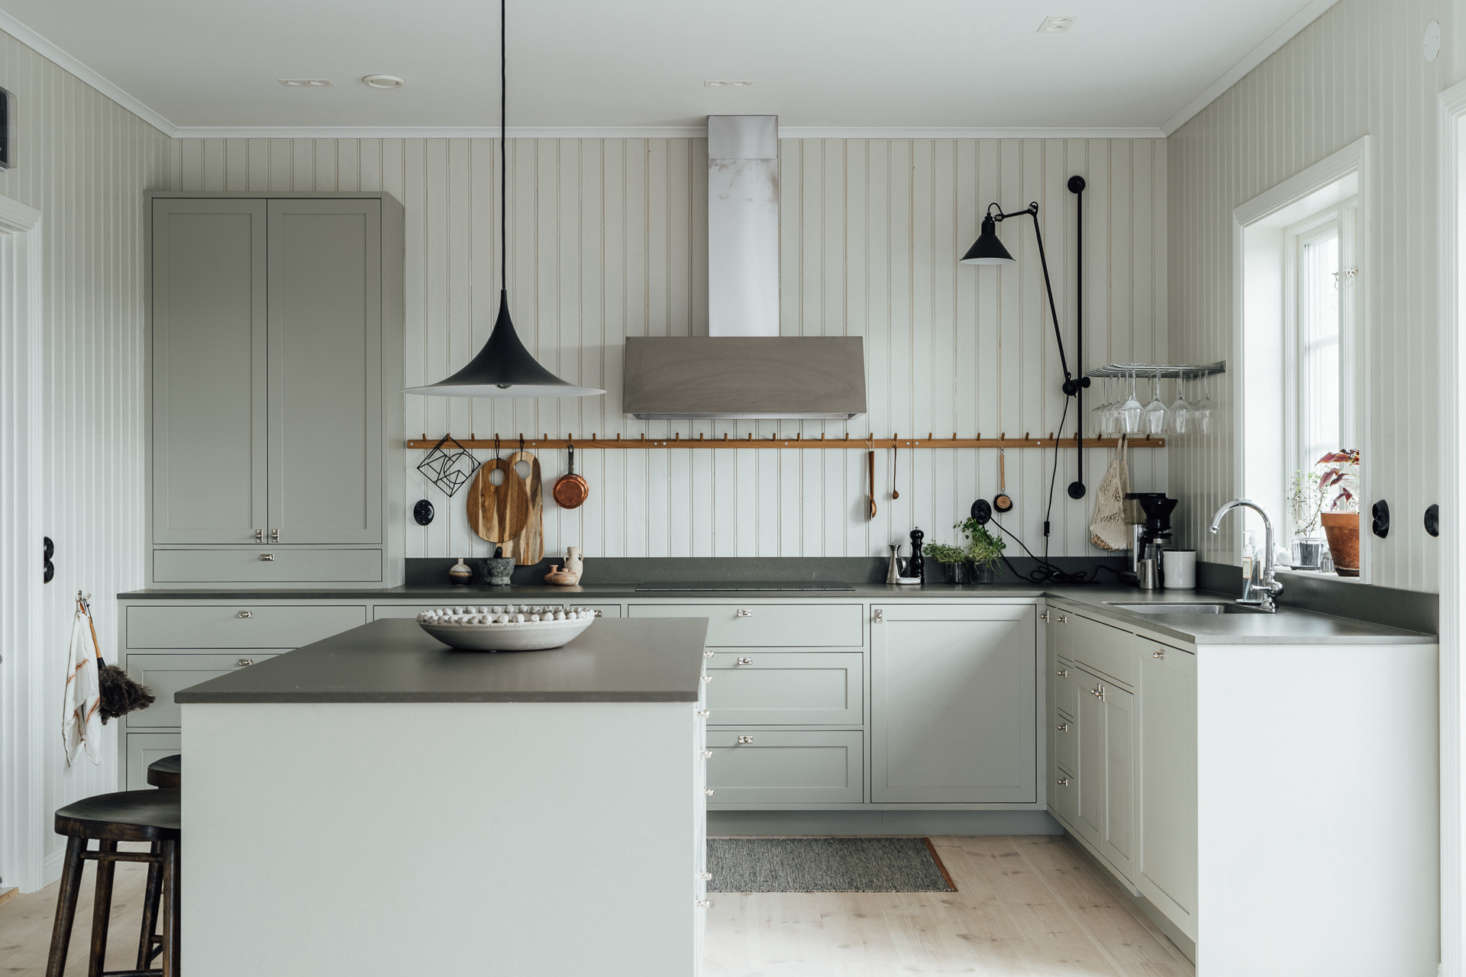 Kitchen of the Week: Country Chic in Sweden, Minimalist Edition